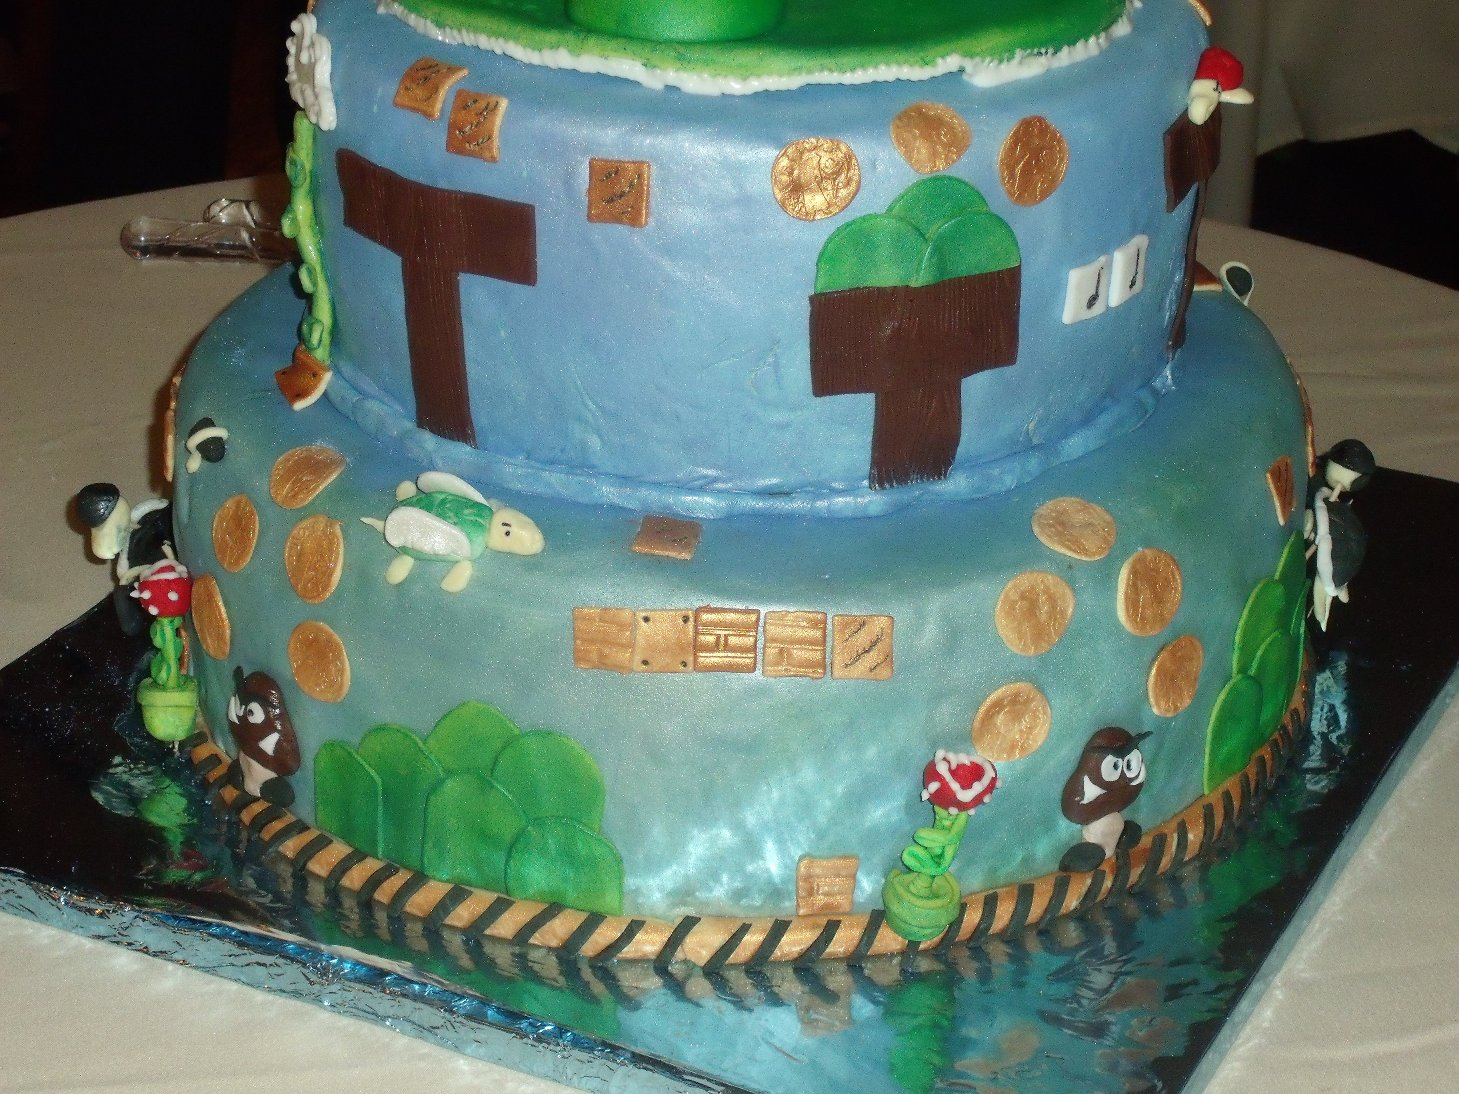 Mario Video Game Theme Wedding Cake Bottom Tier Close Up 2